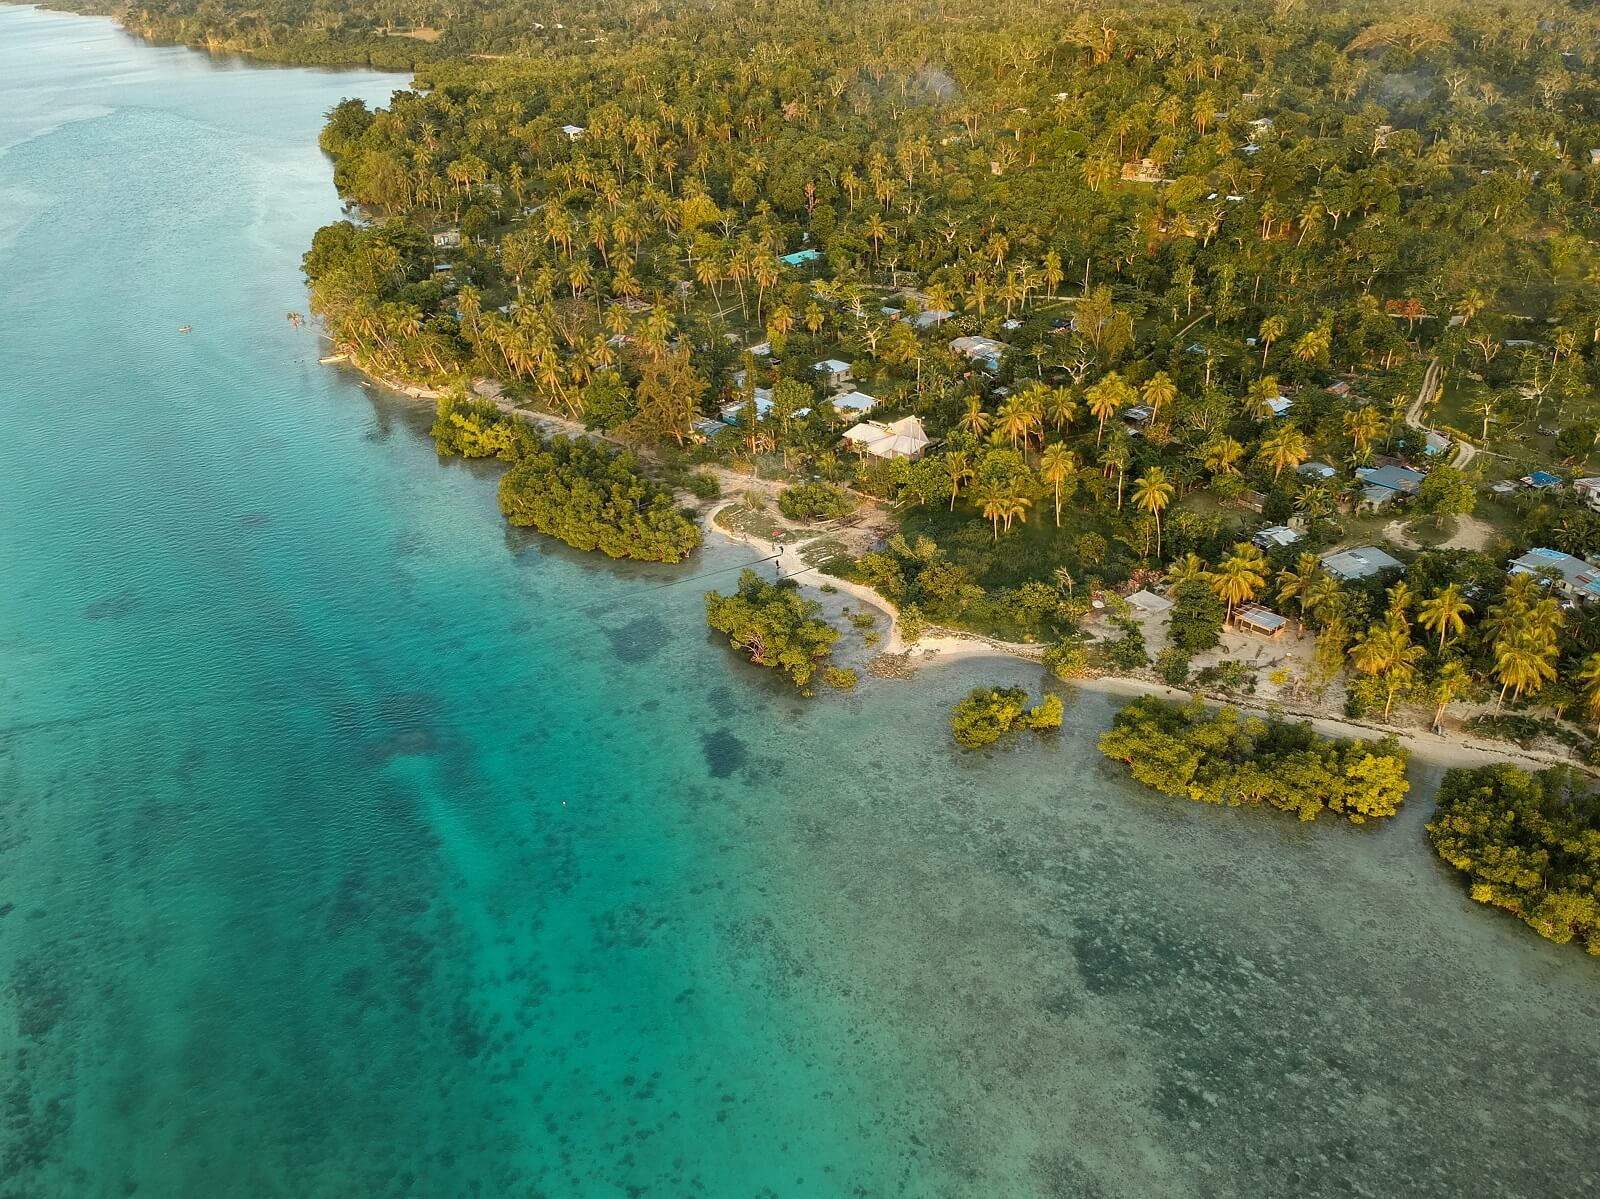 A Year In Review: 2020 Trends On Islands Worldwide